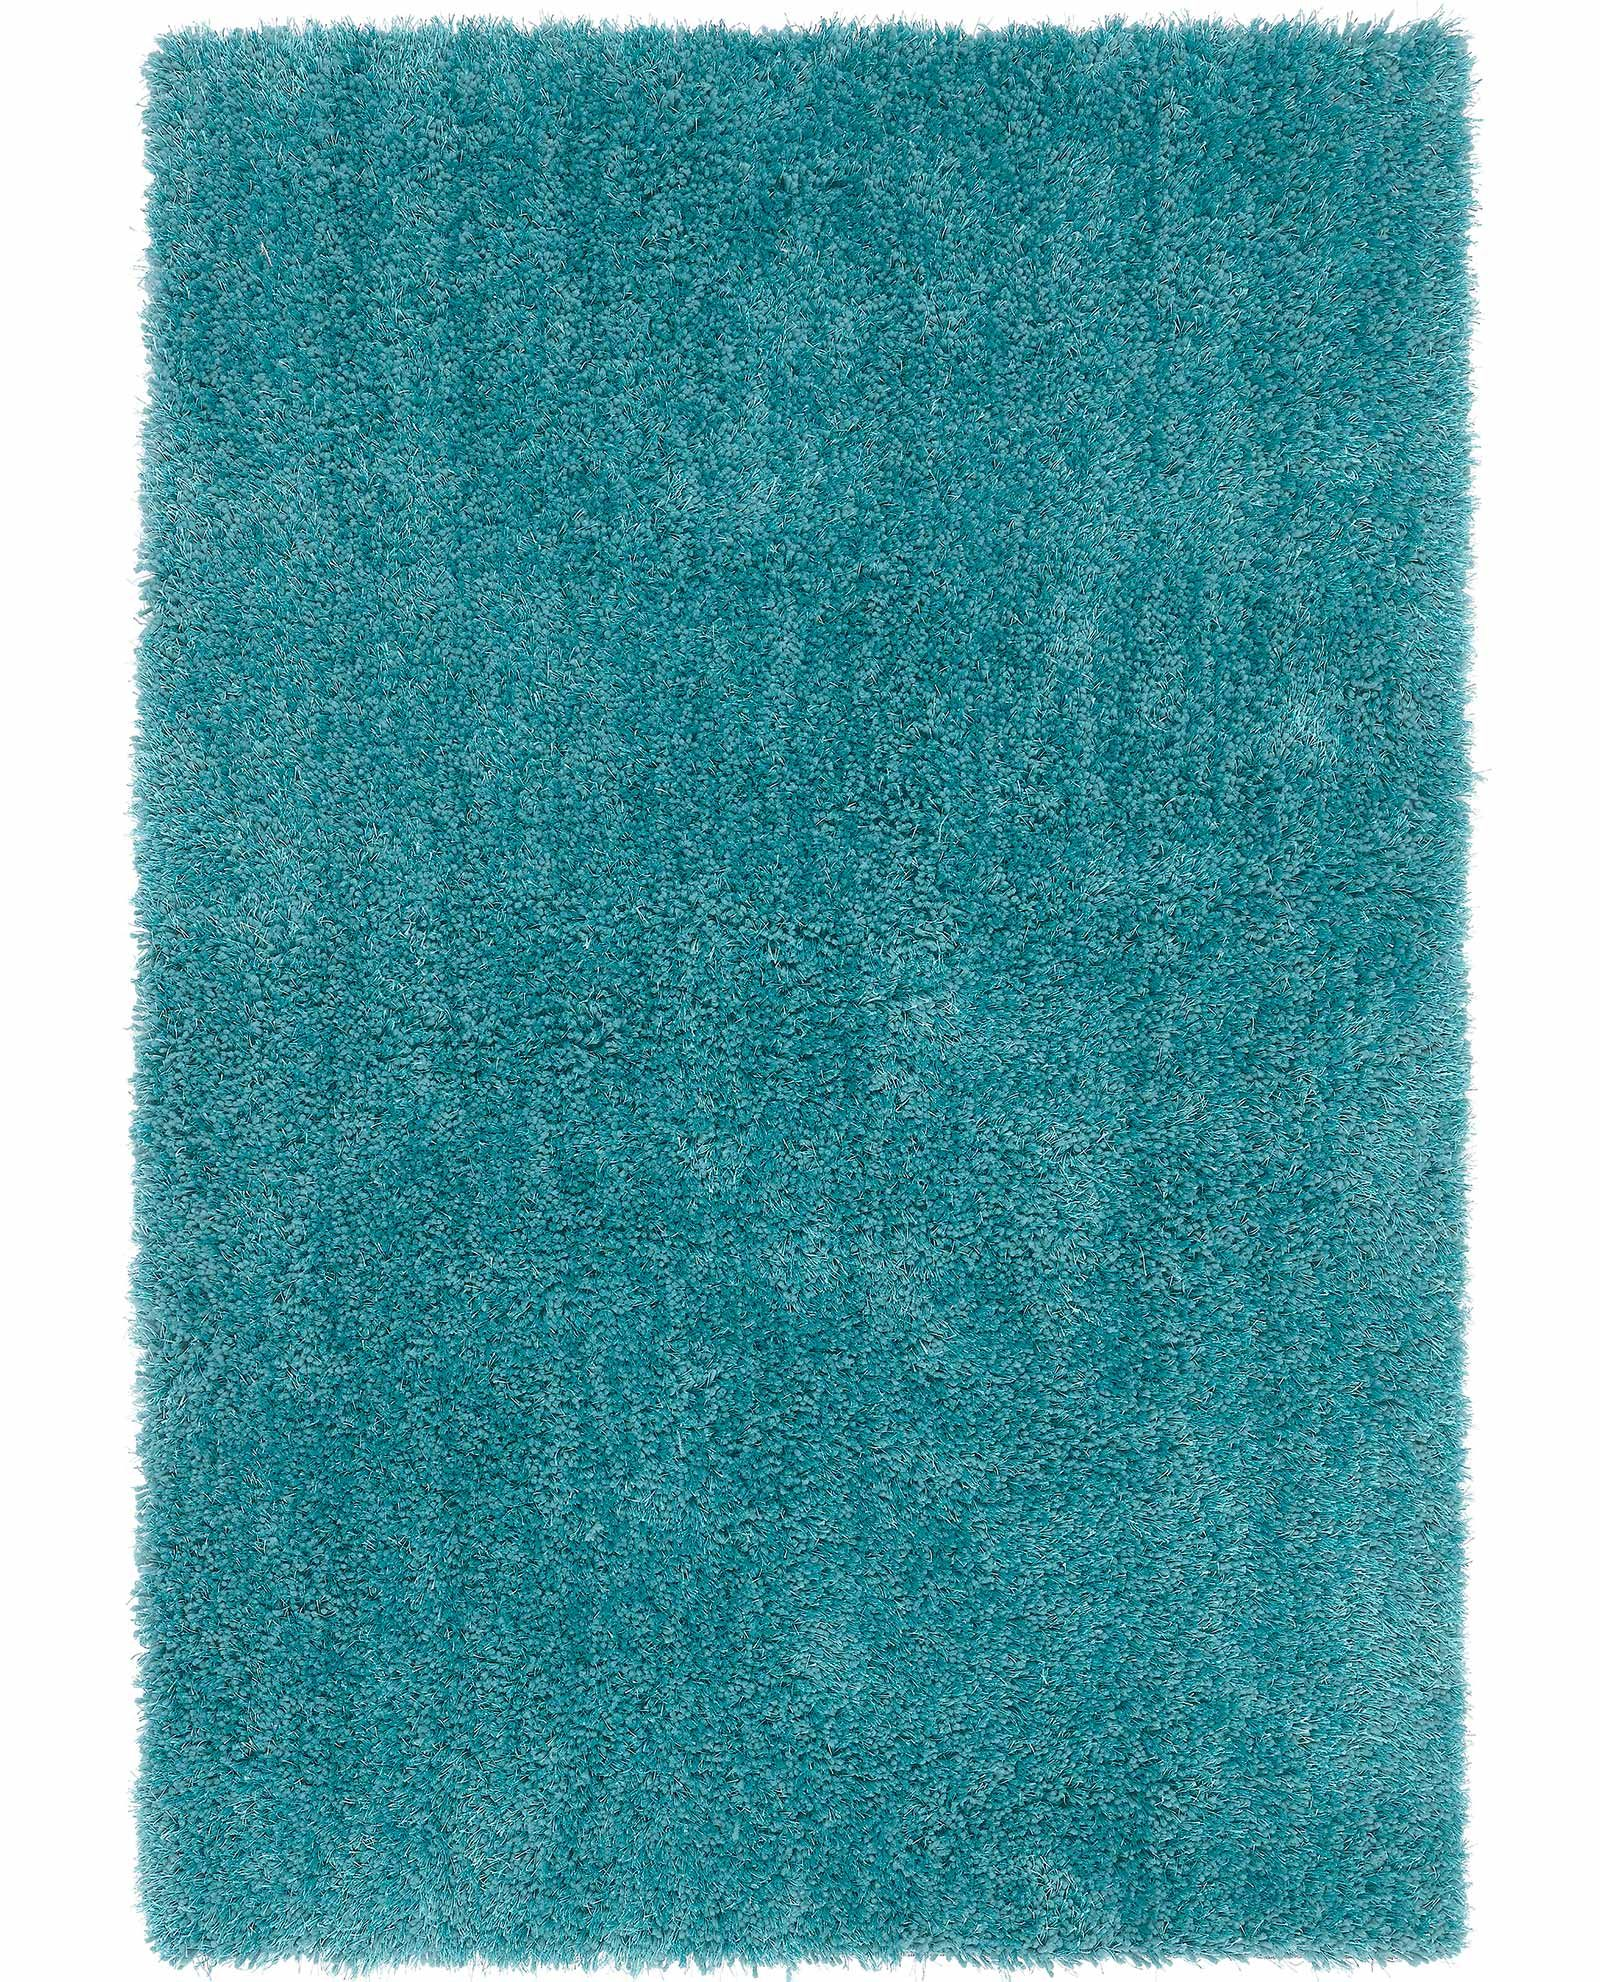 Andessi rug Mythica Teal 1